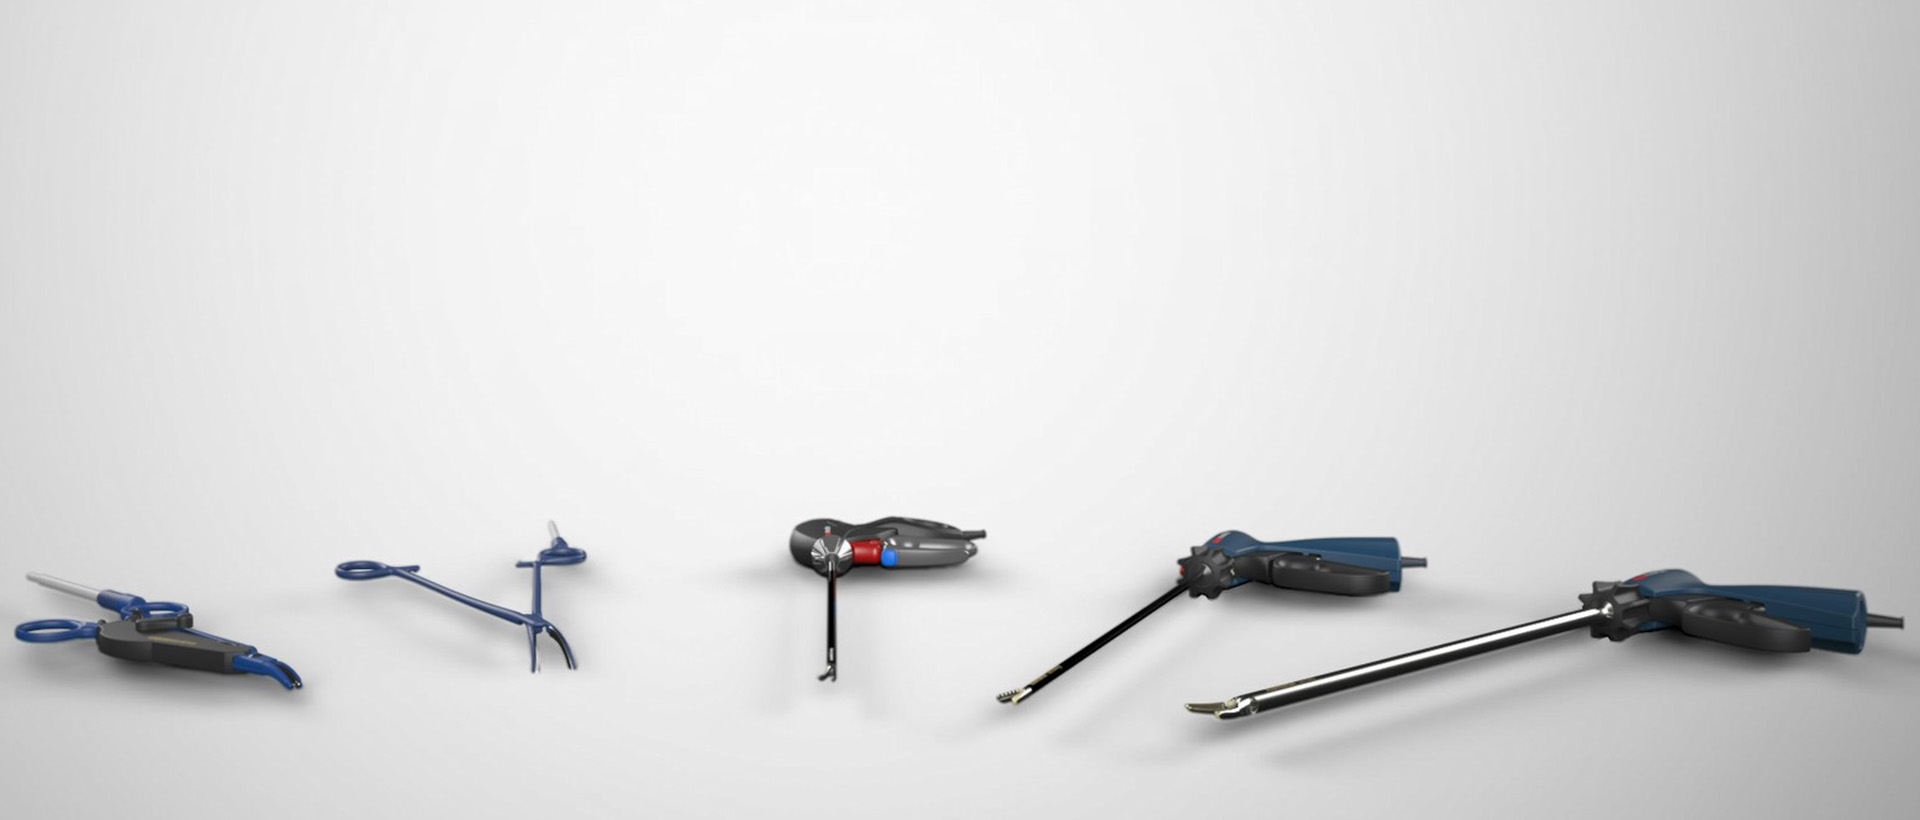 Our reusable vessel sealing instruments at a glance